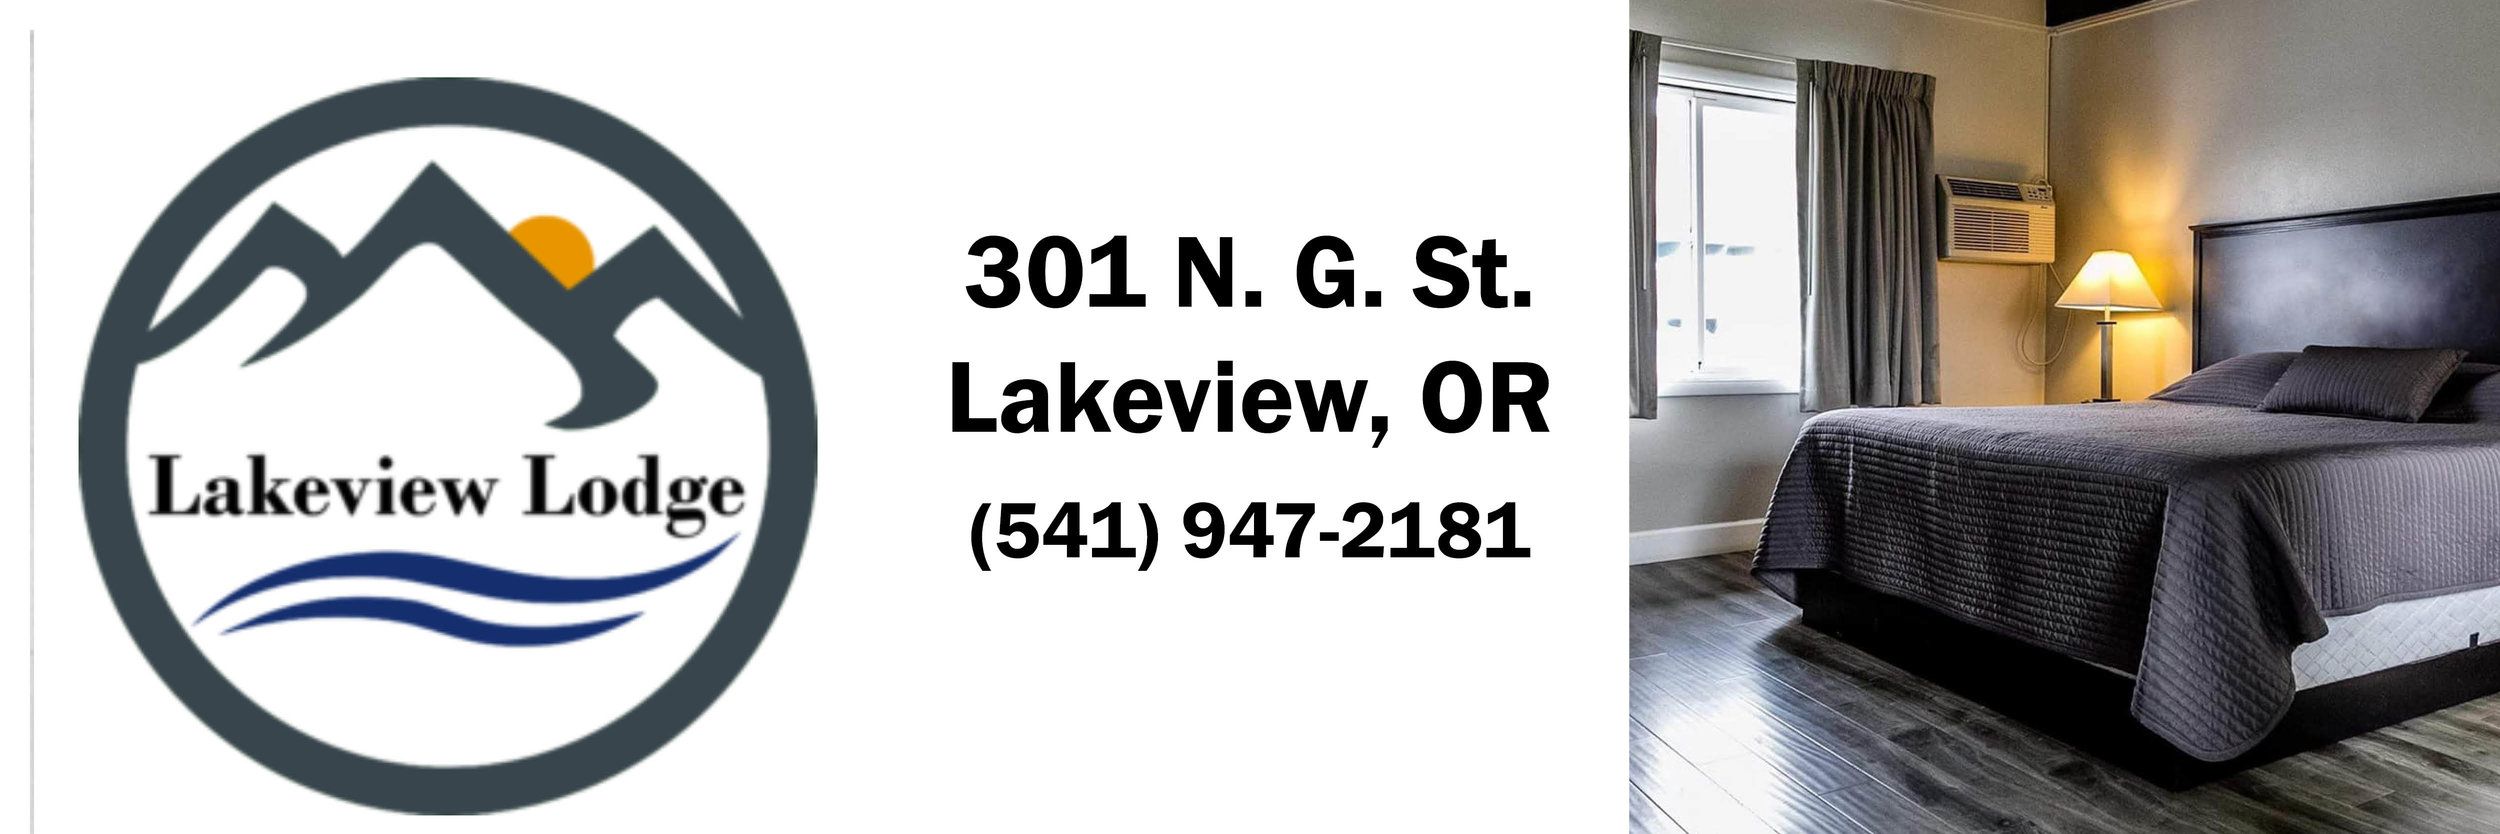 Lakeview Lodge Cover Photo.jpg